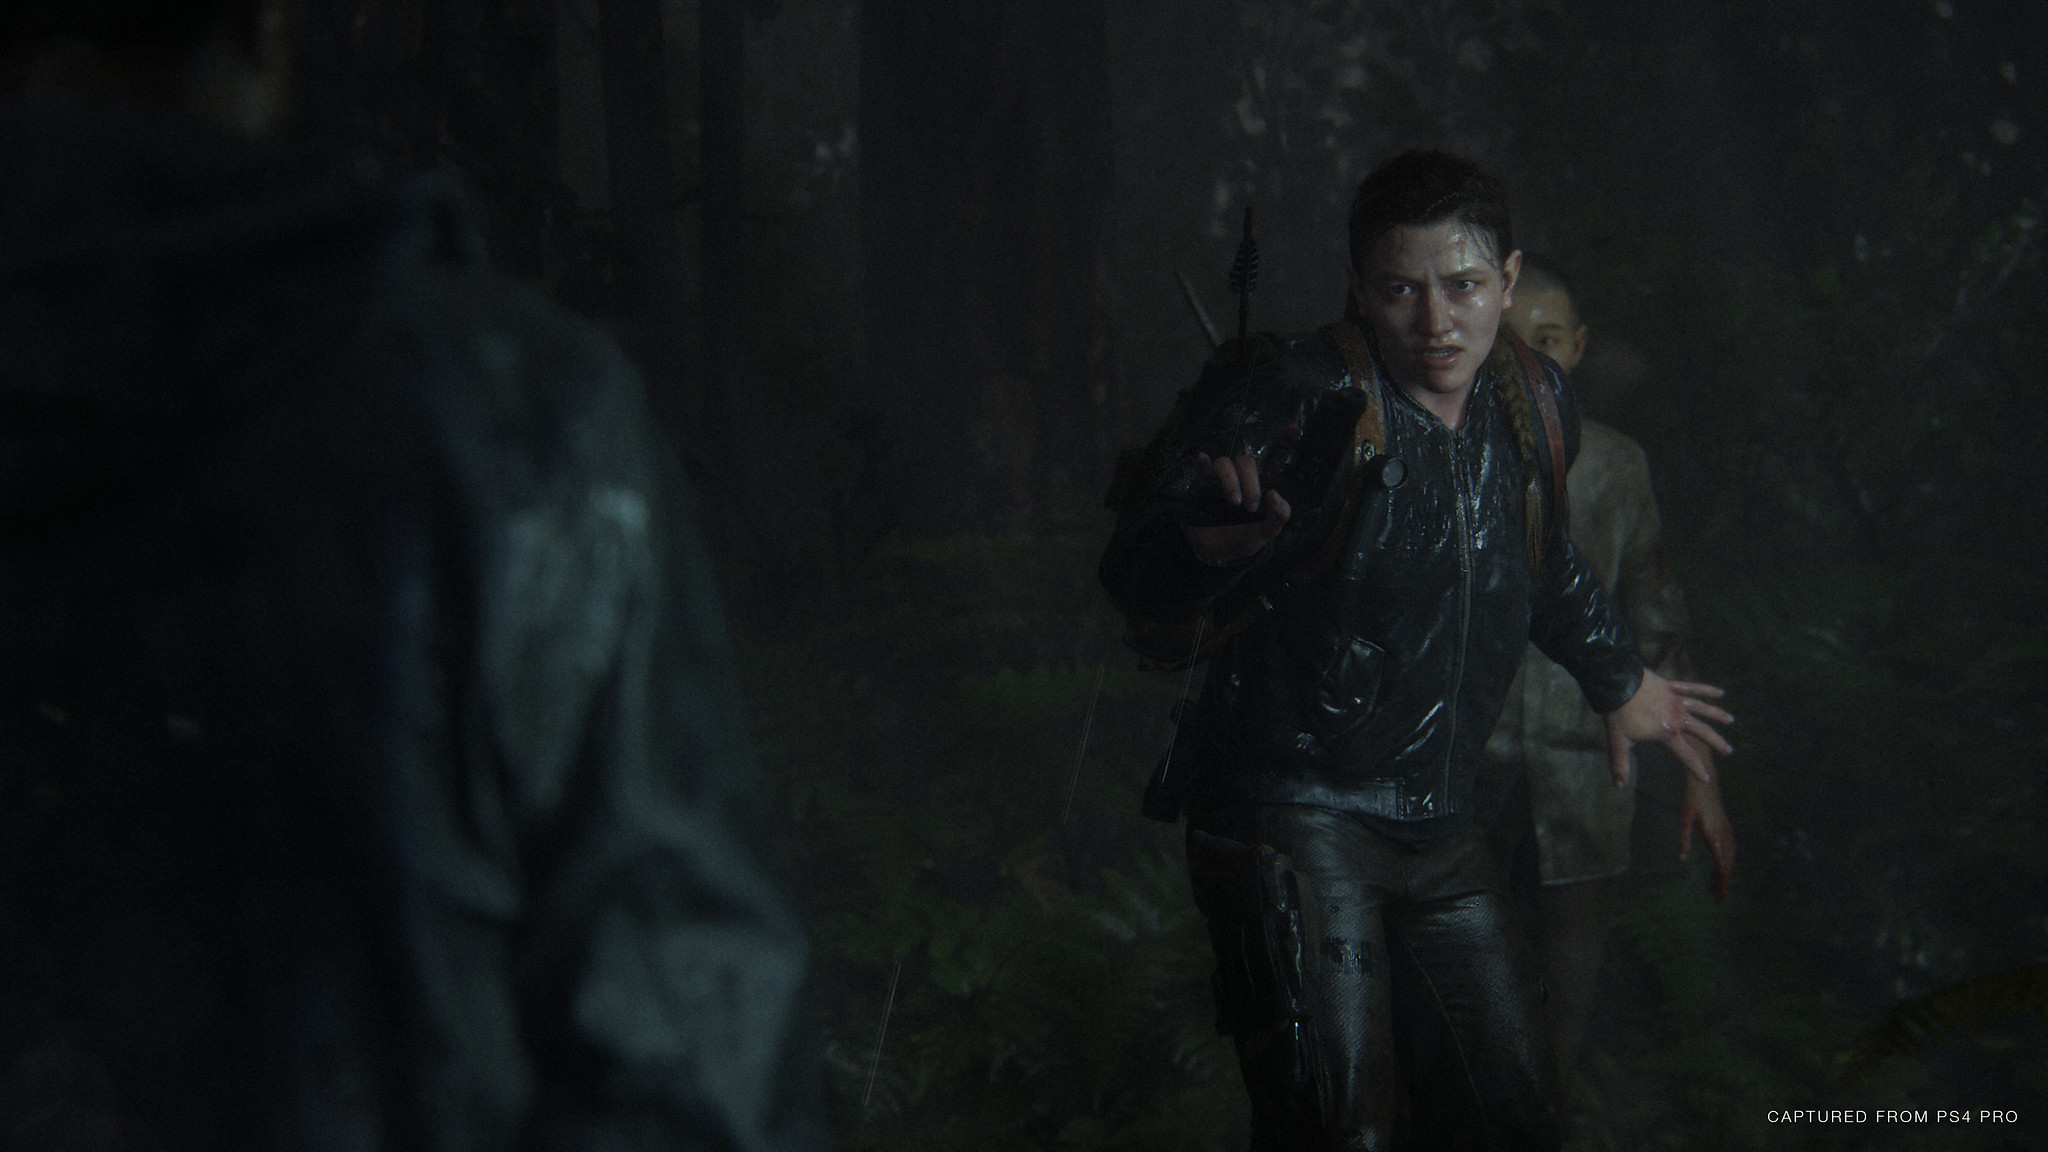 The Last of Us Part II New Trailer Focuses on Abby's Story